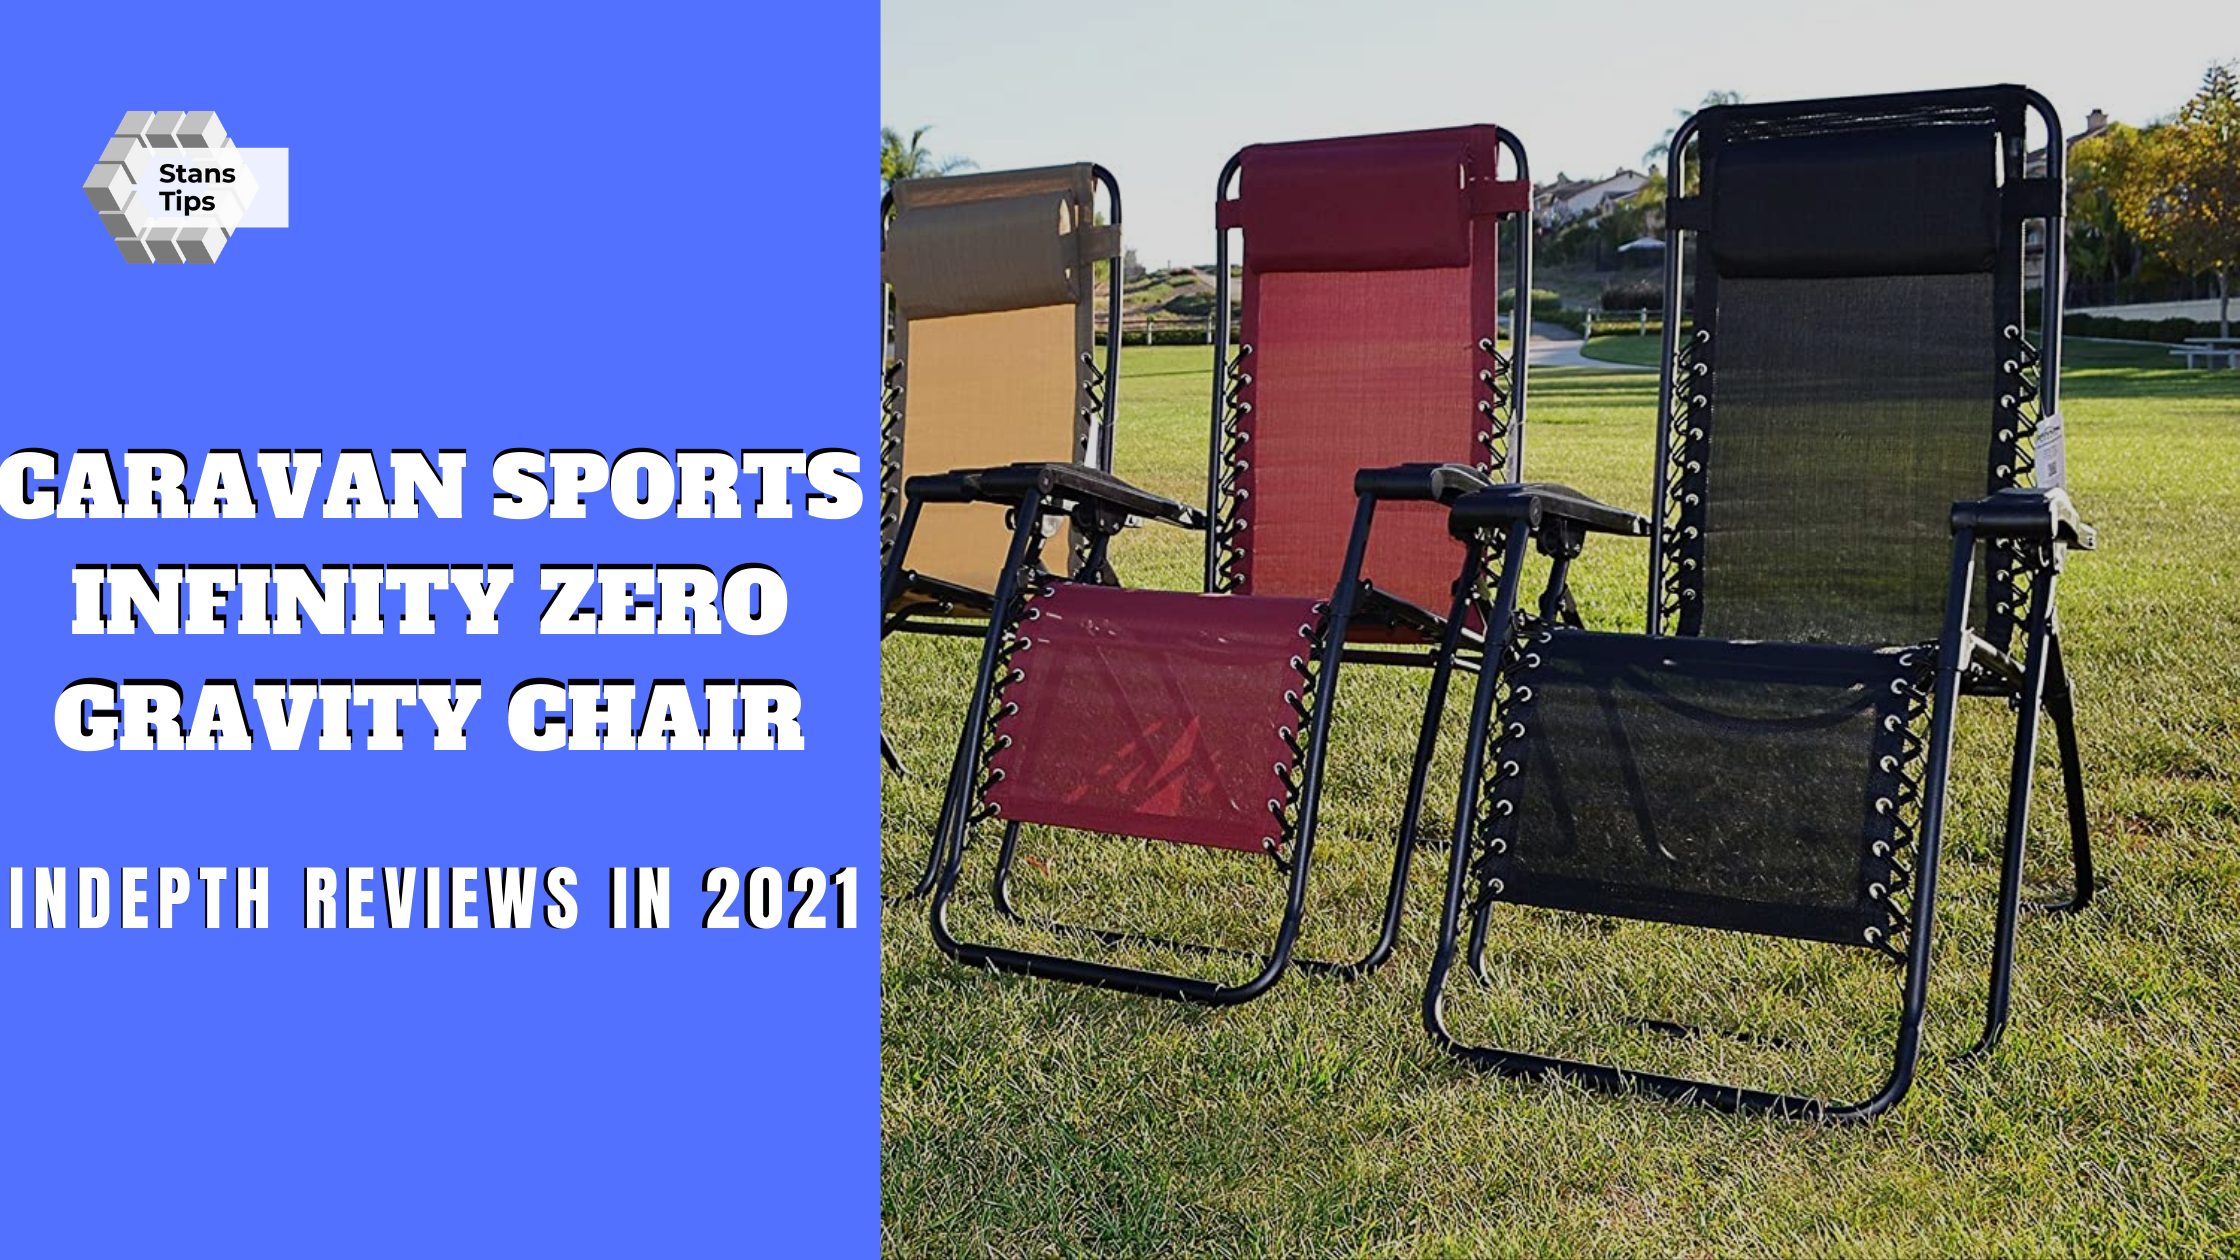 Caravan sports infinity zero gravity chair review